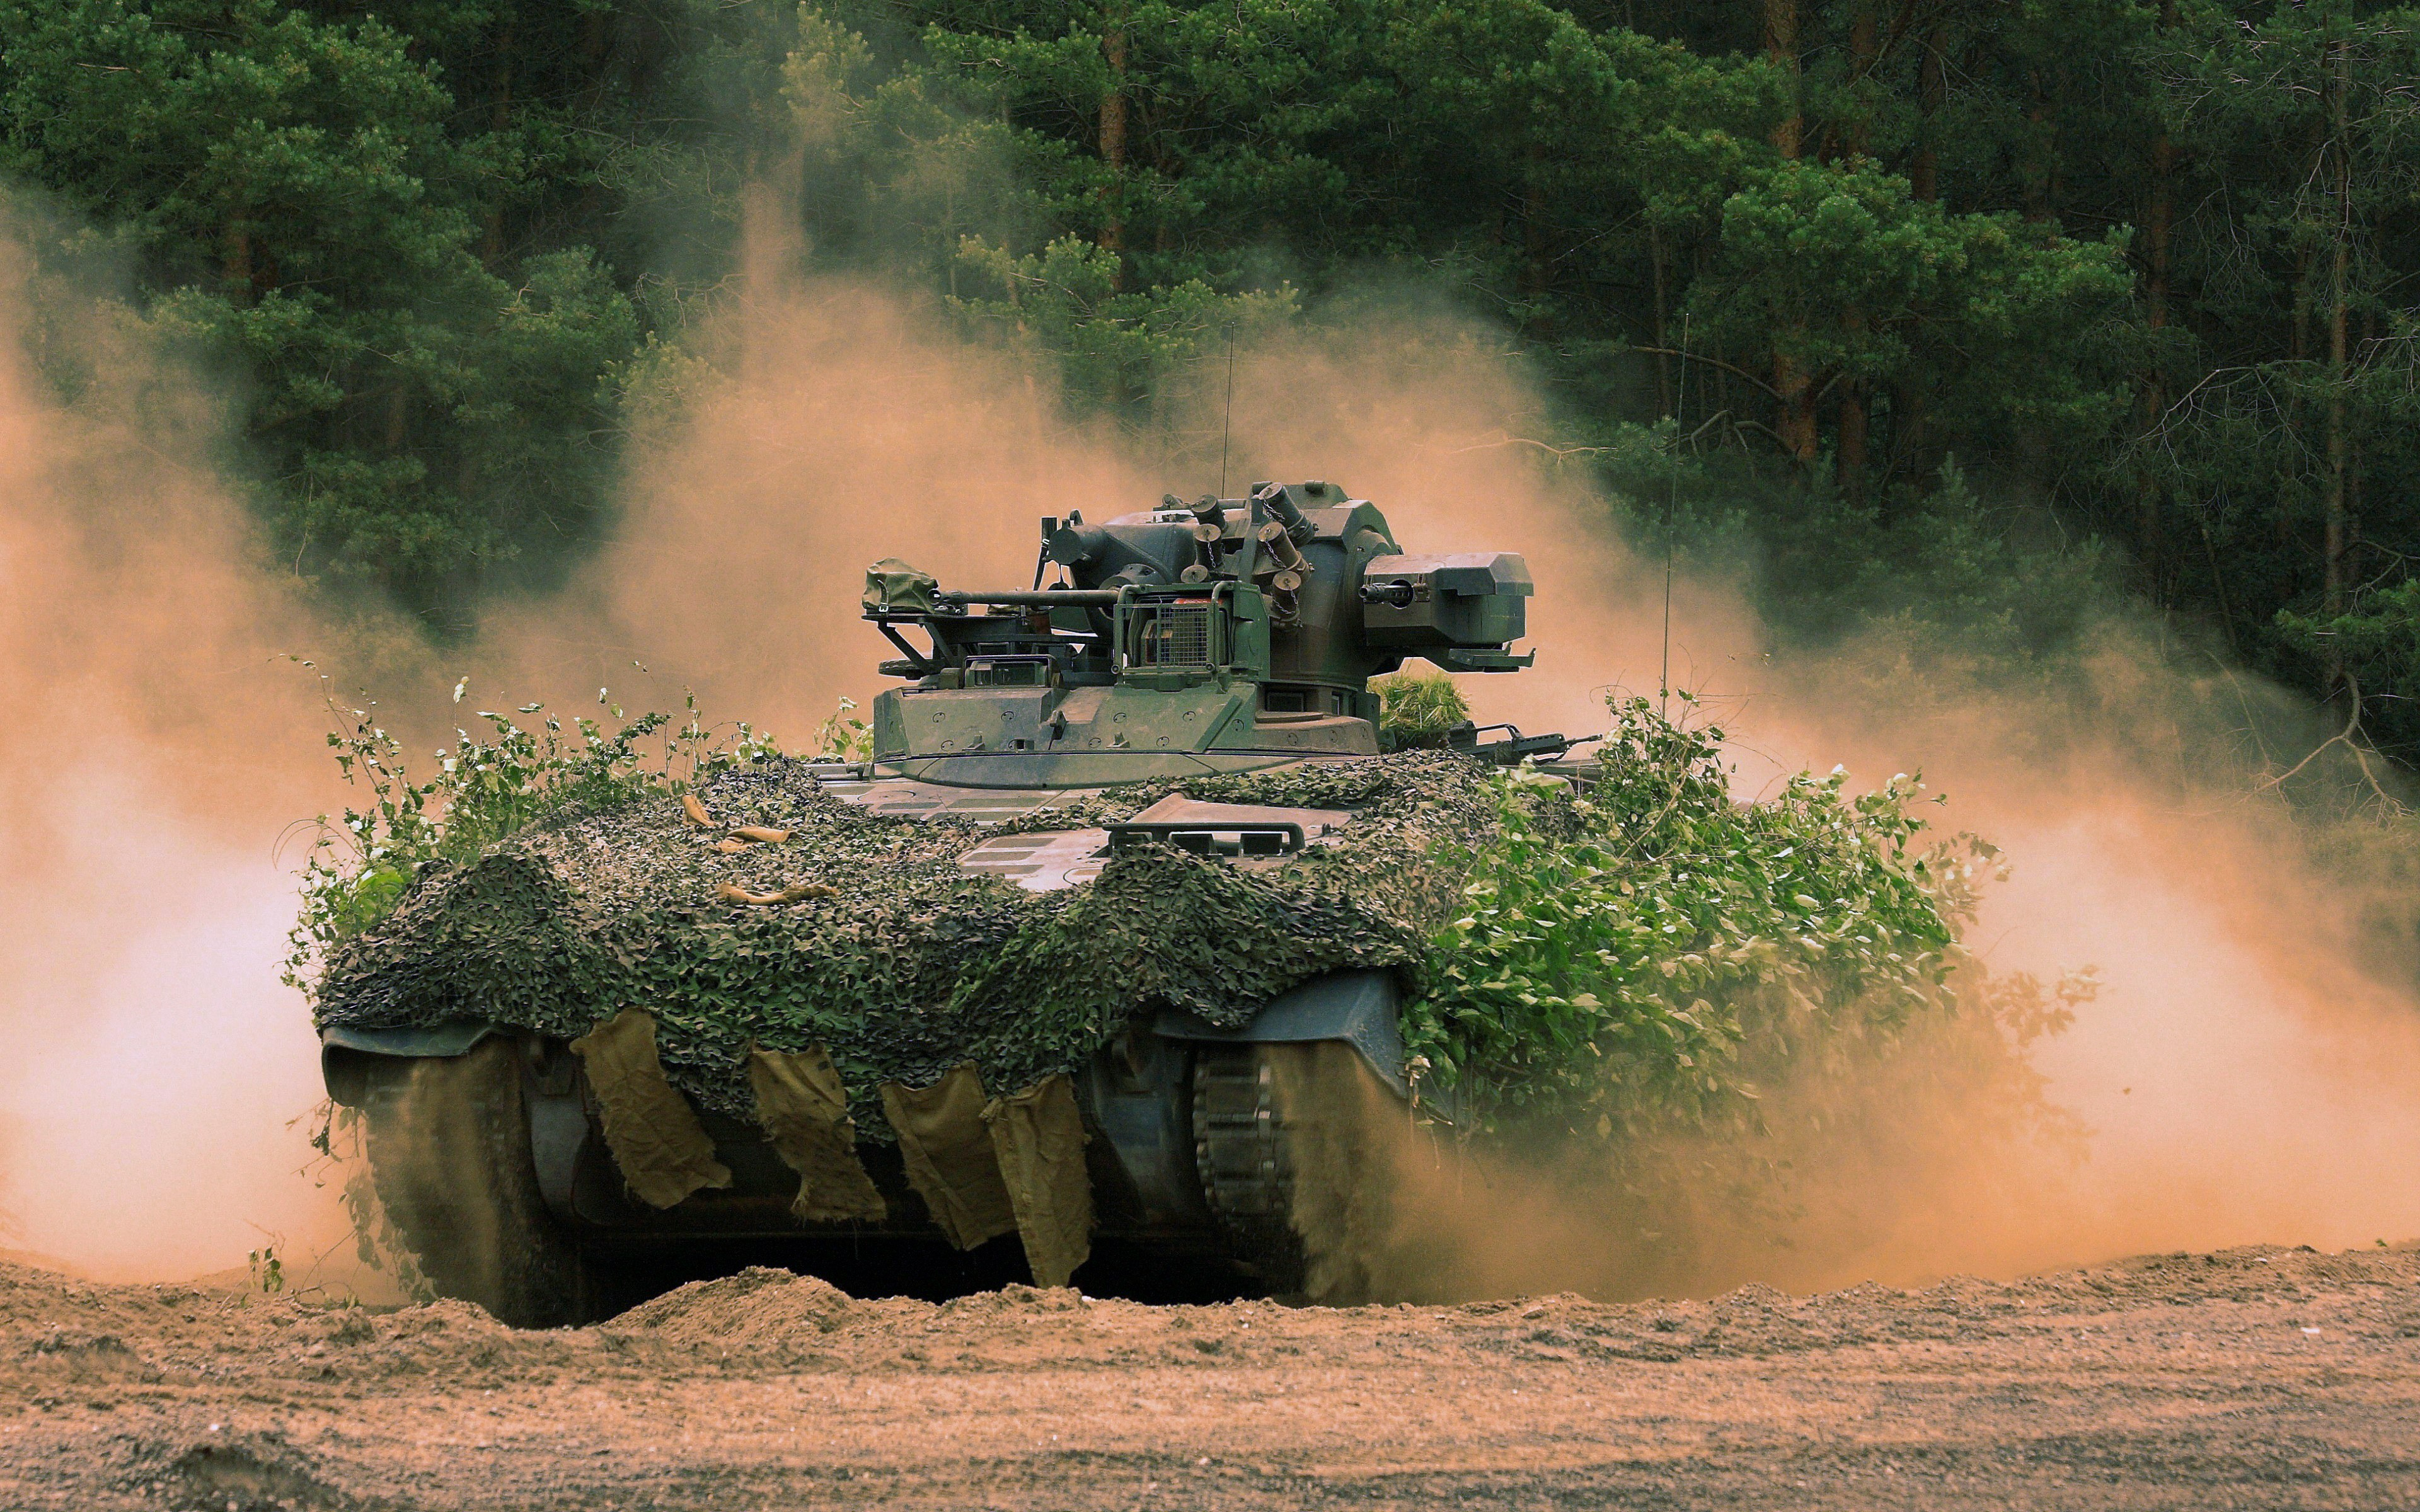 Cool Space Iphone Wallpaper Wallpaper Marder A5a1 Ifv Bundeswehr Infantry Fighting